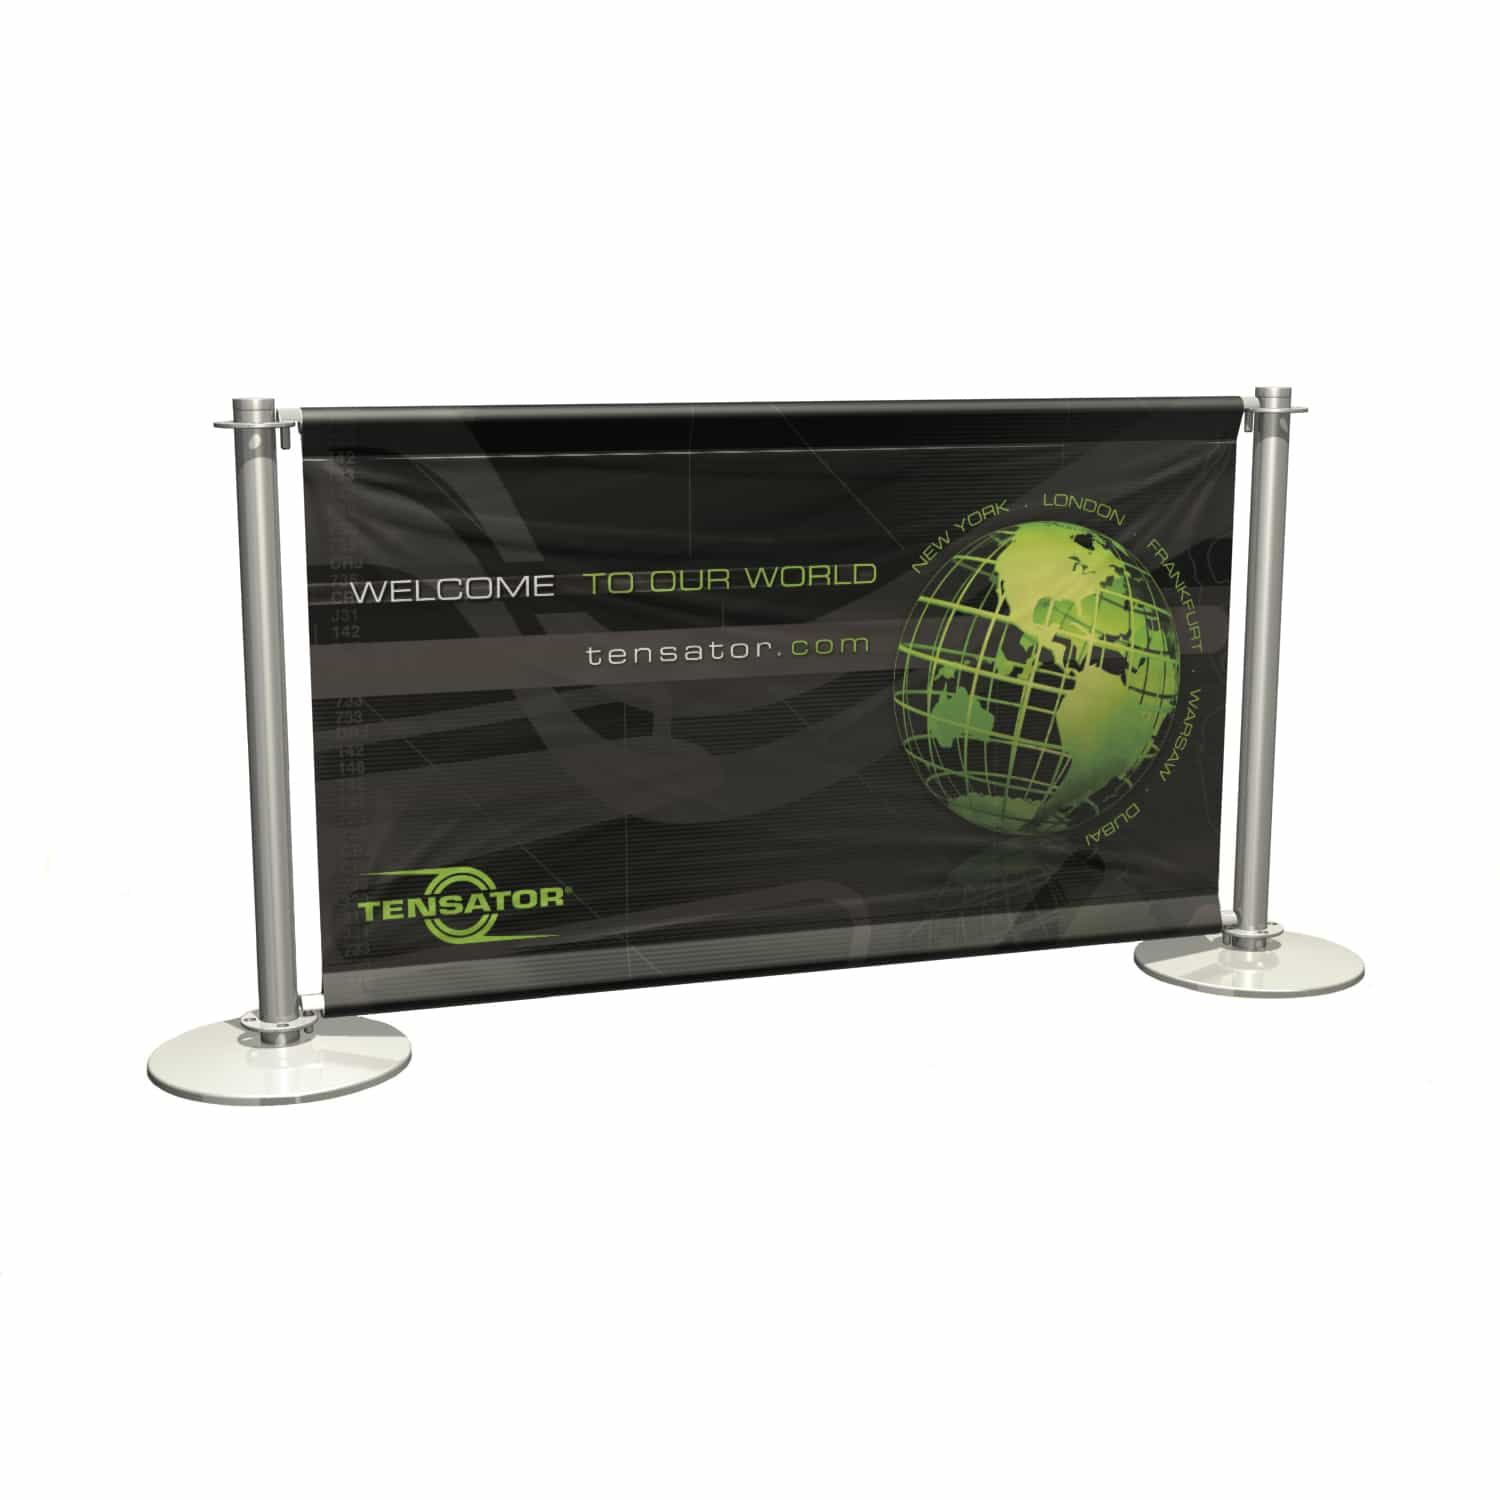 cafe banner stainless steel